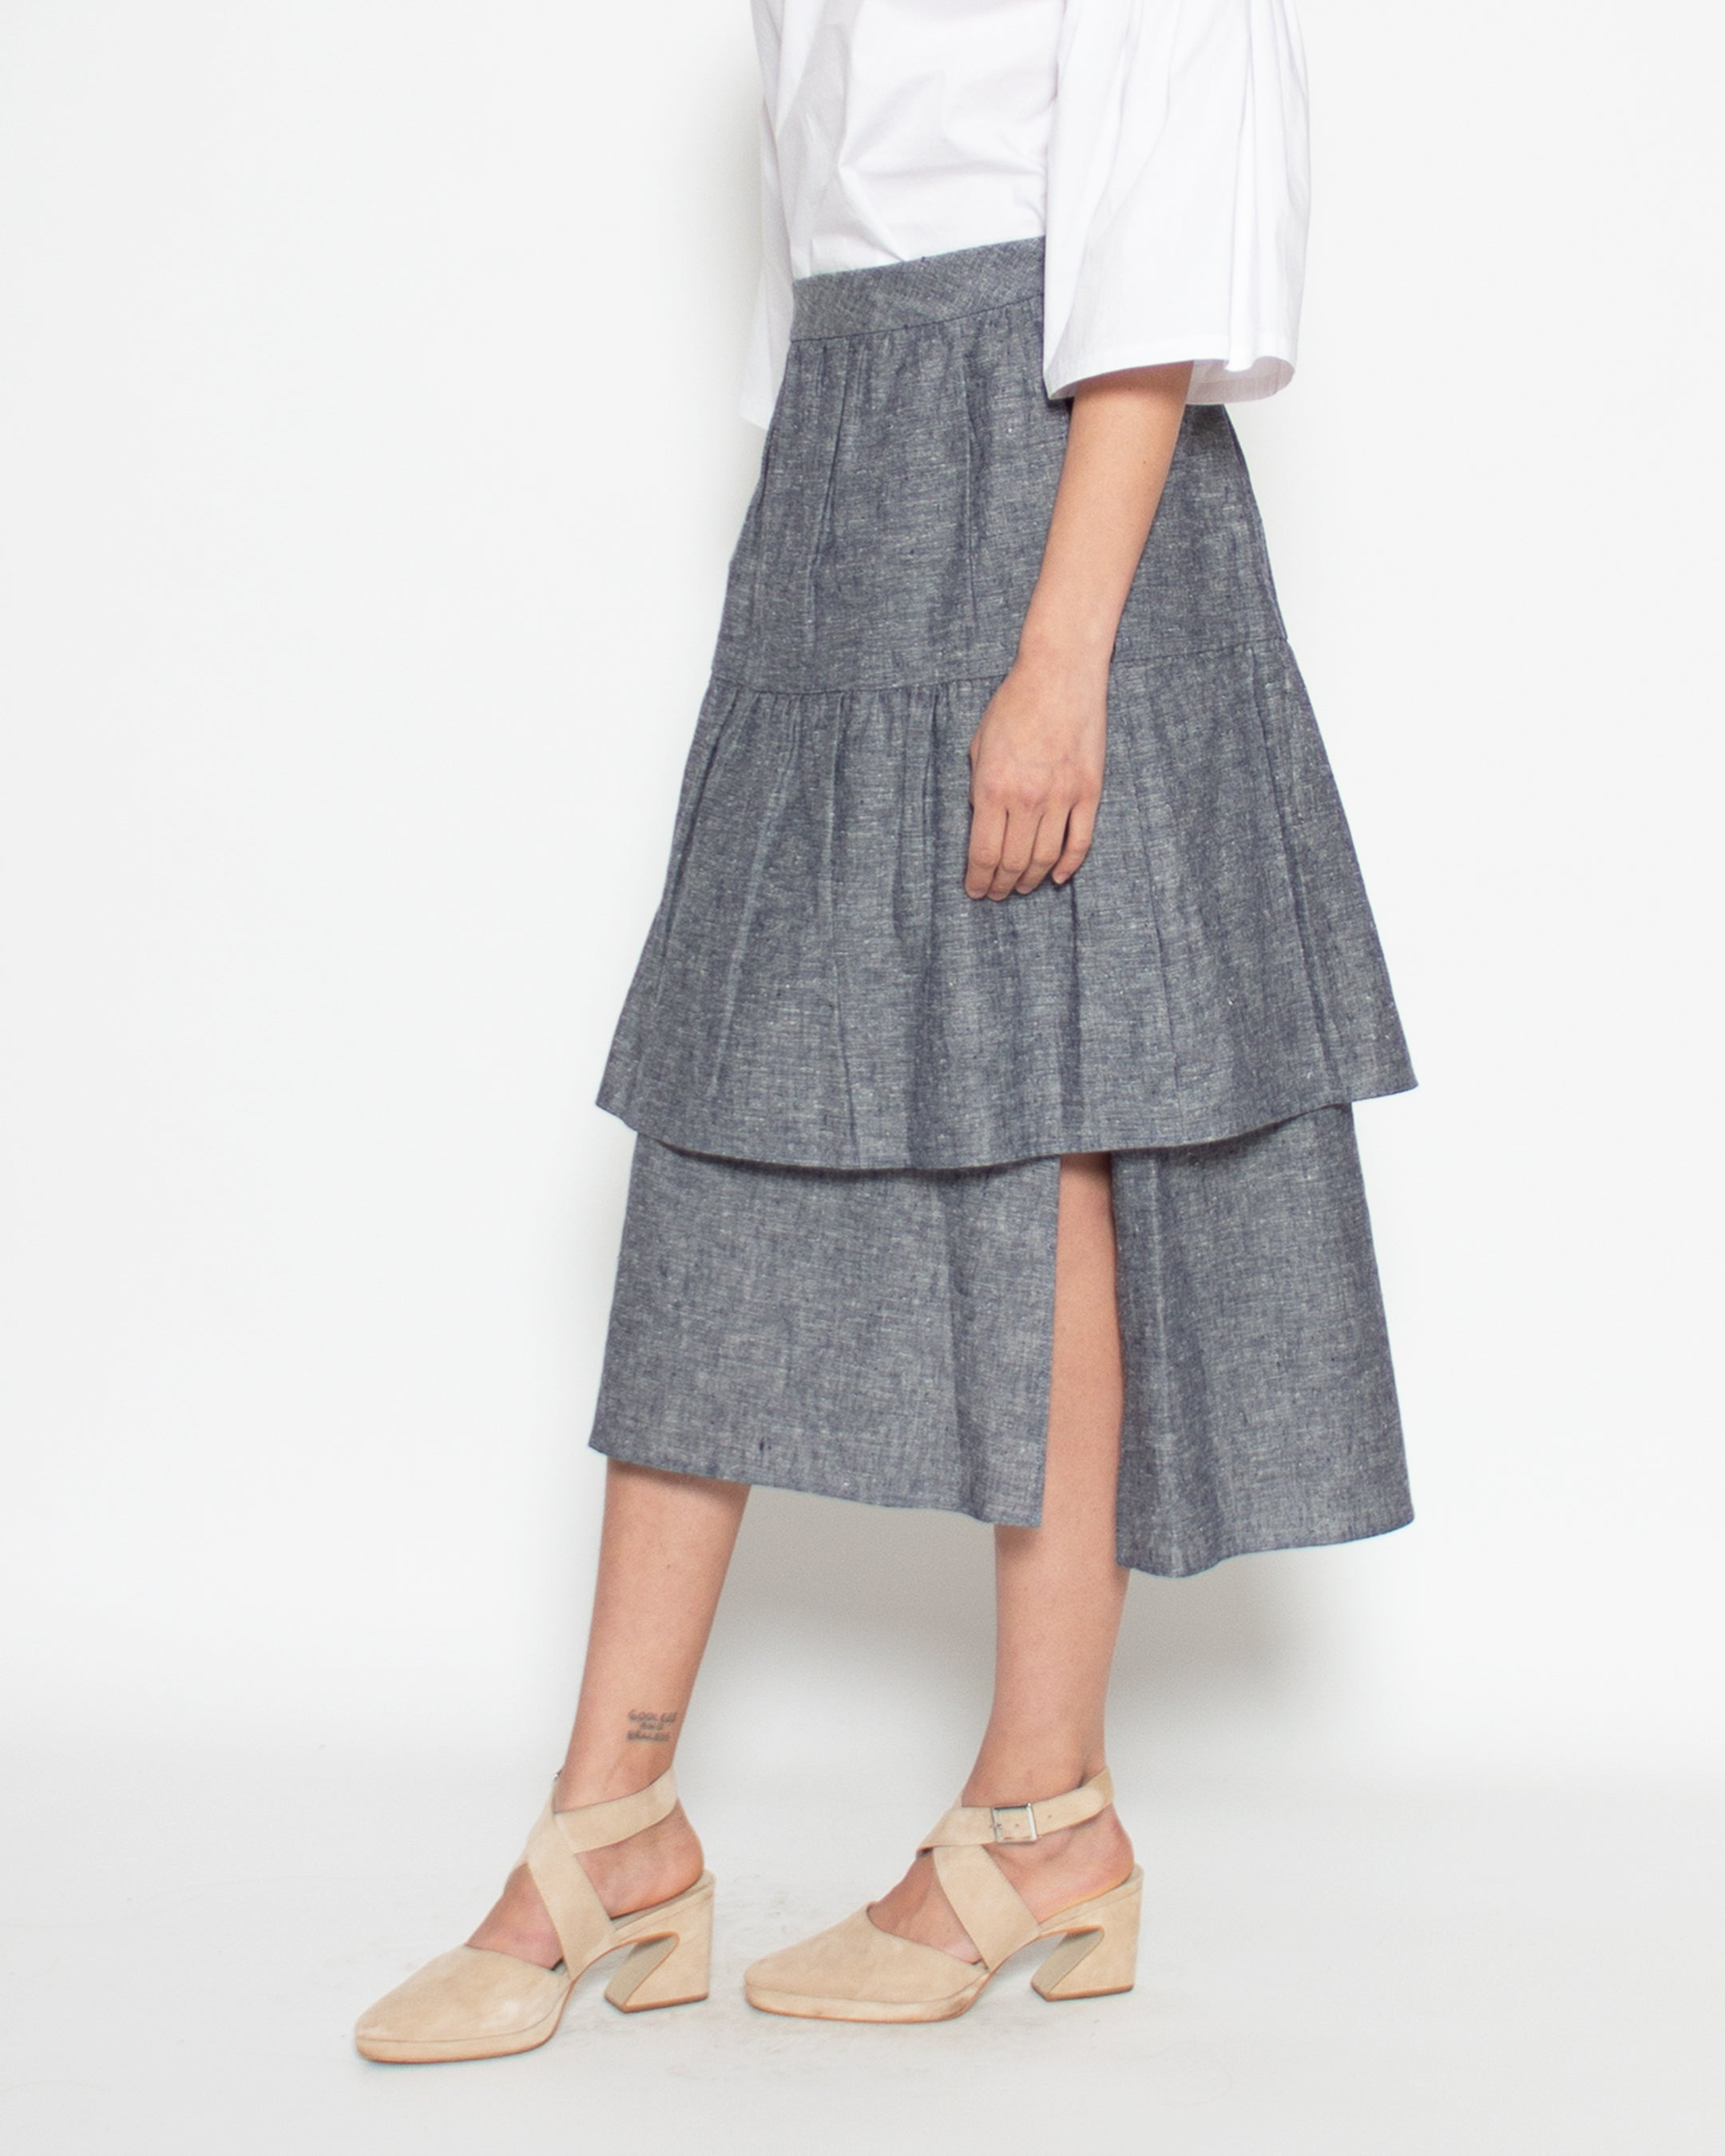 Phedra Skirt in Steel Hemp-Organic Cotton